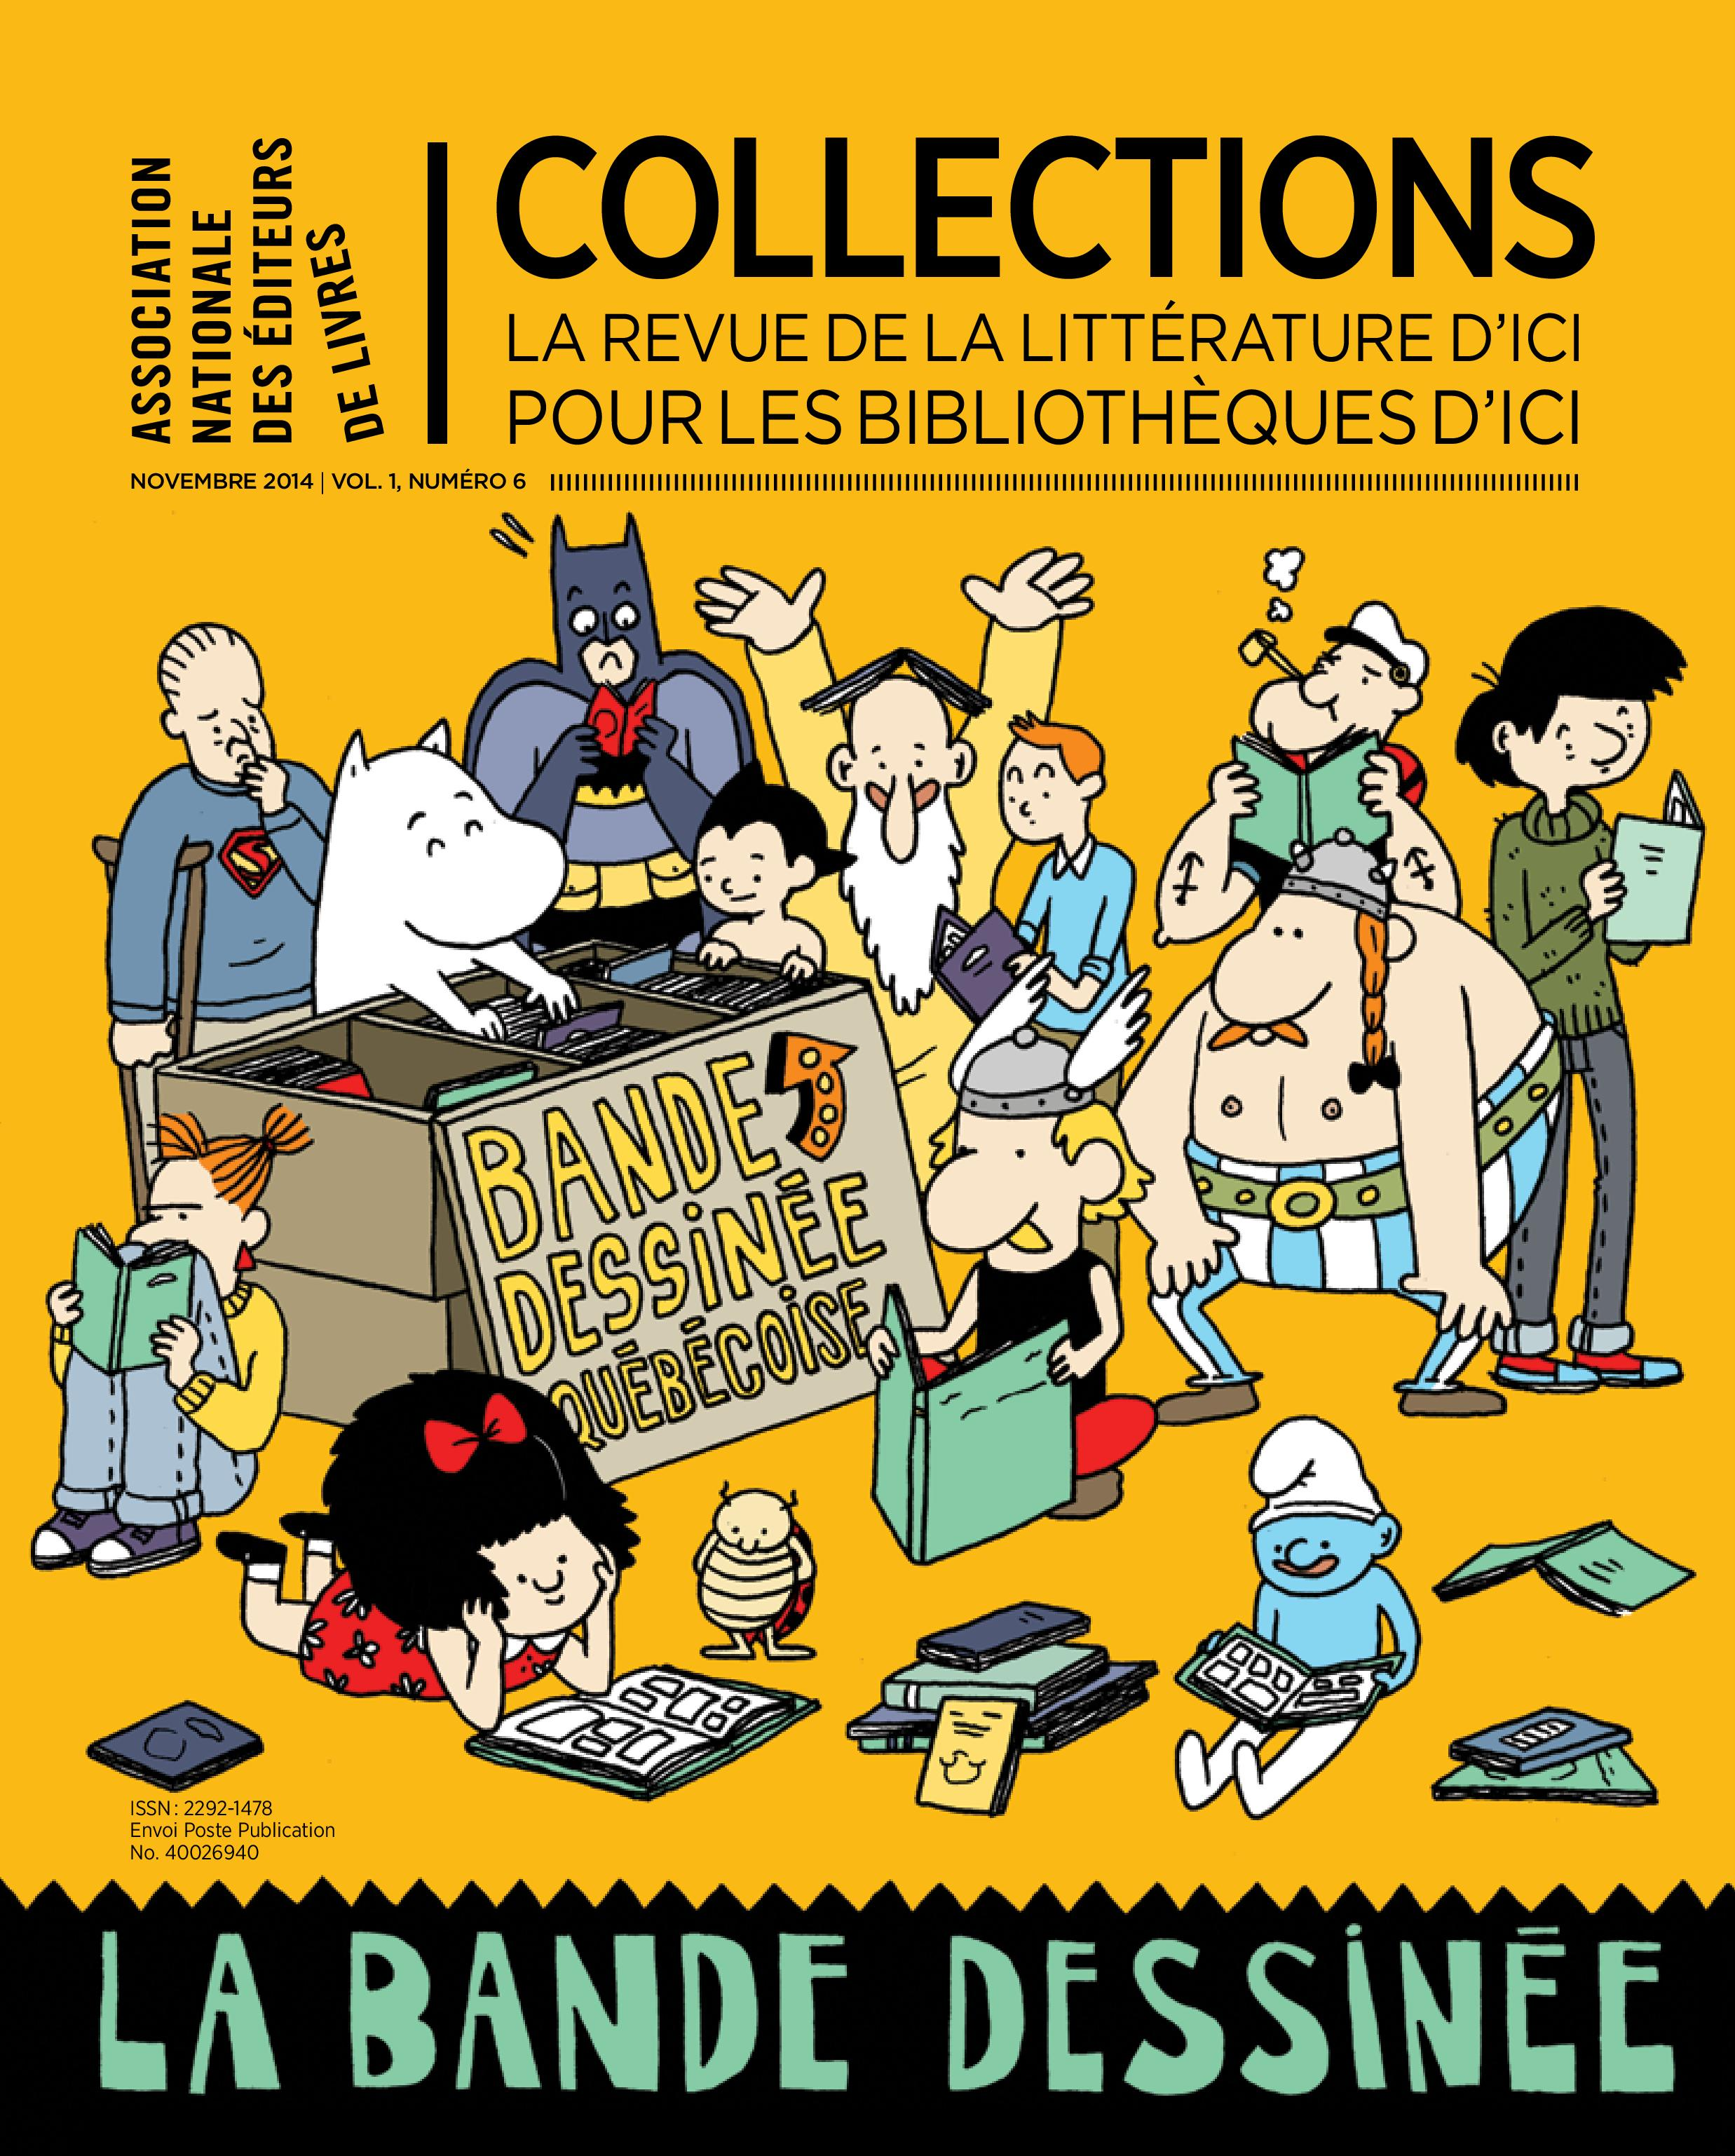 Collections Vol 1, No 6, La bande dessinée